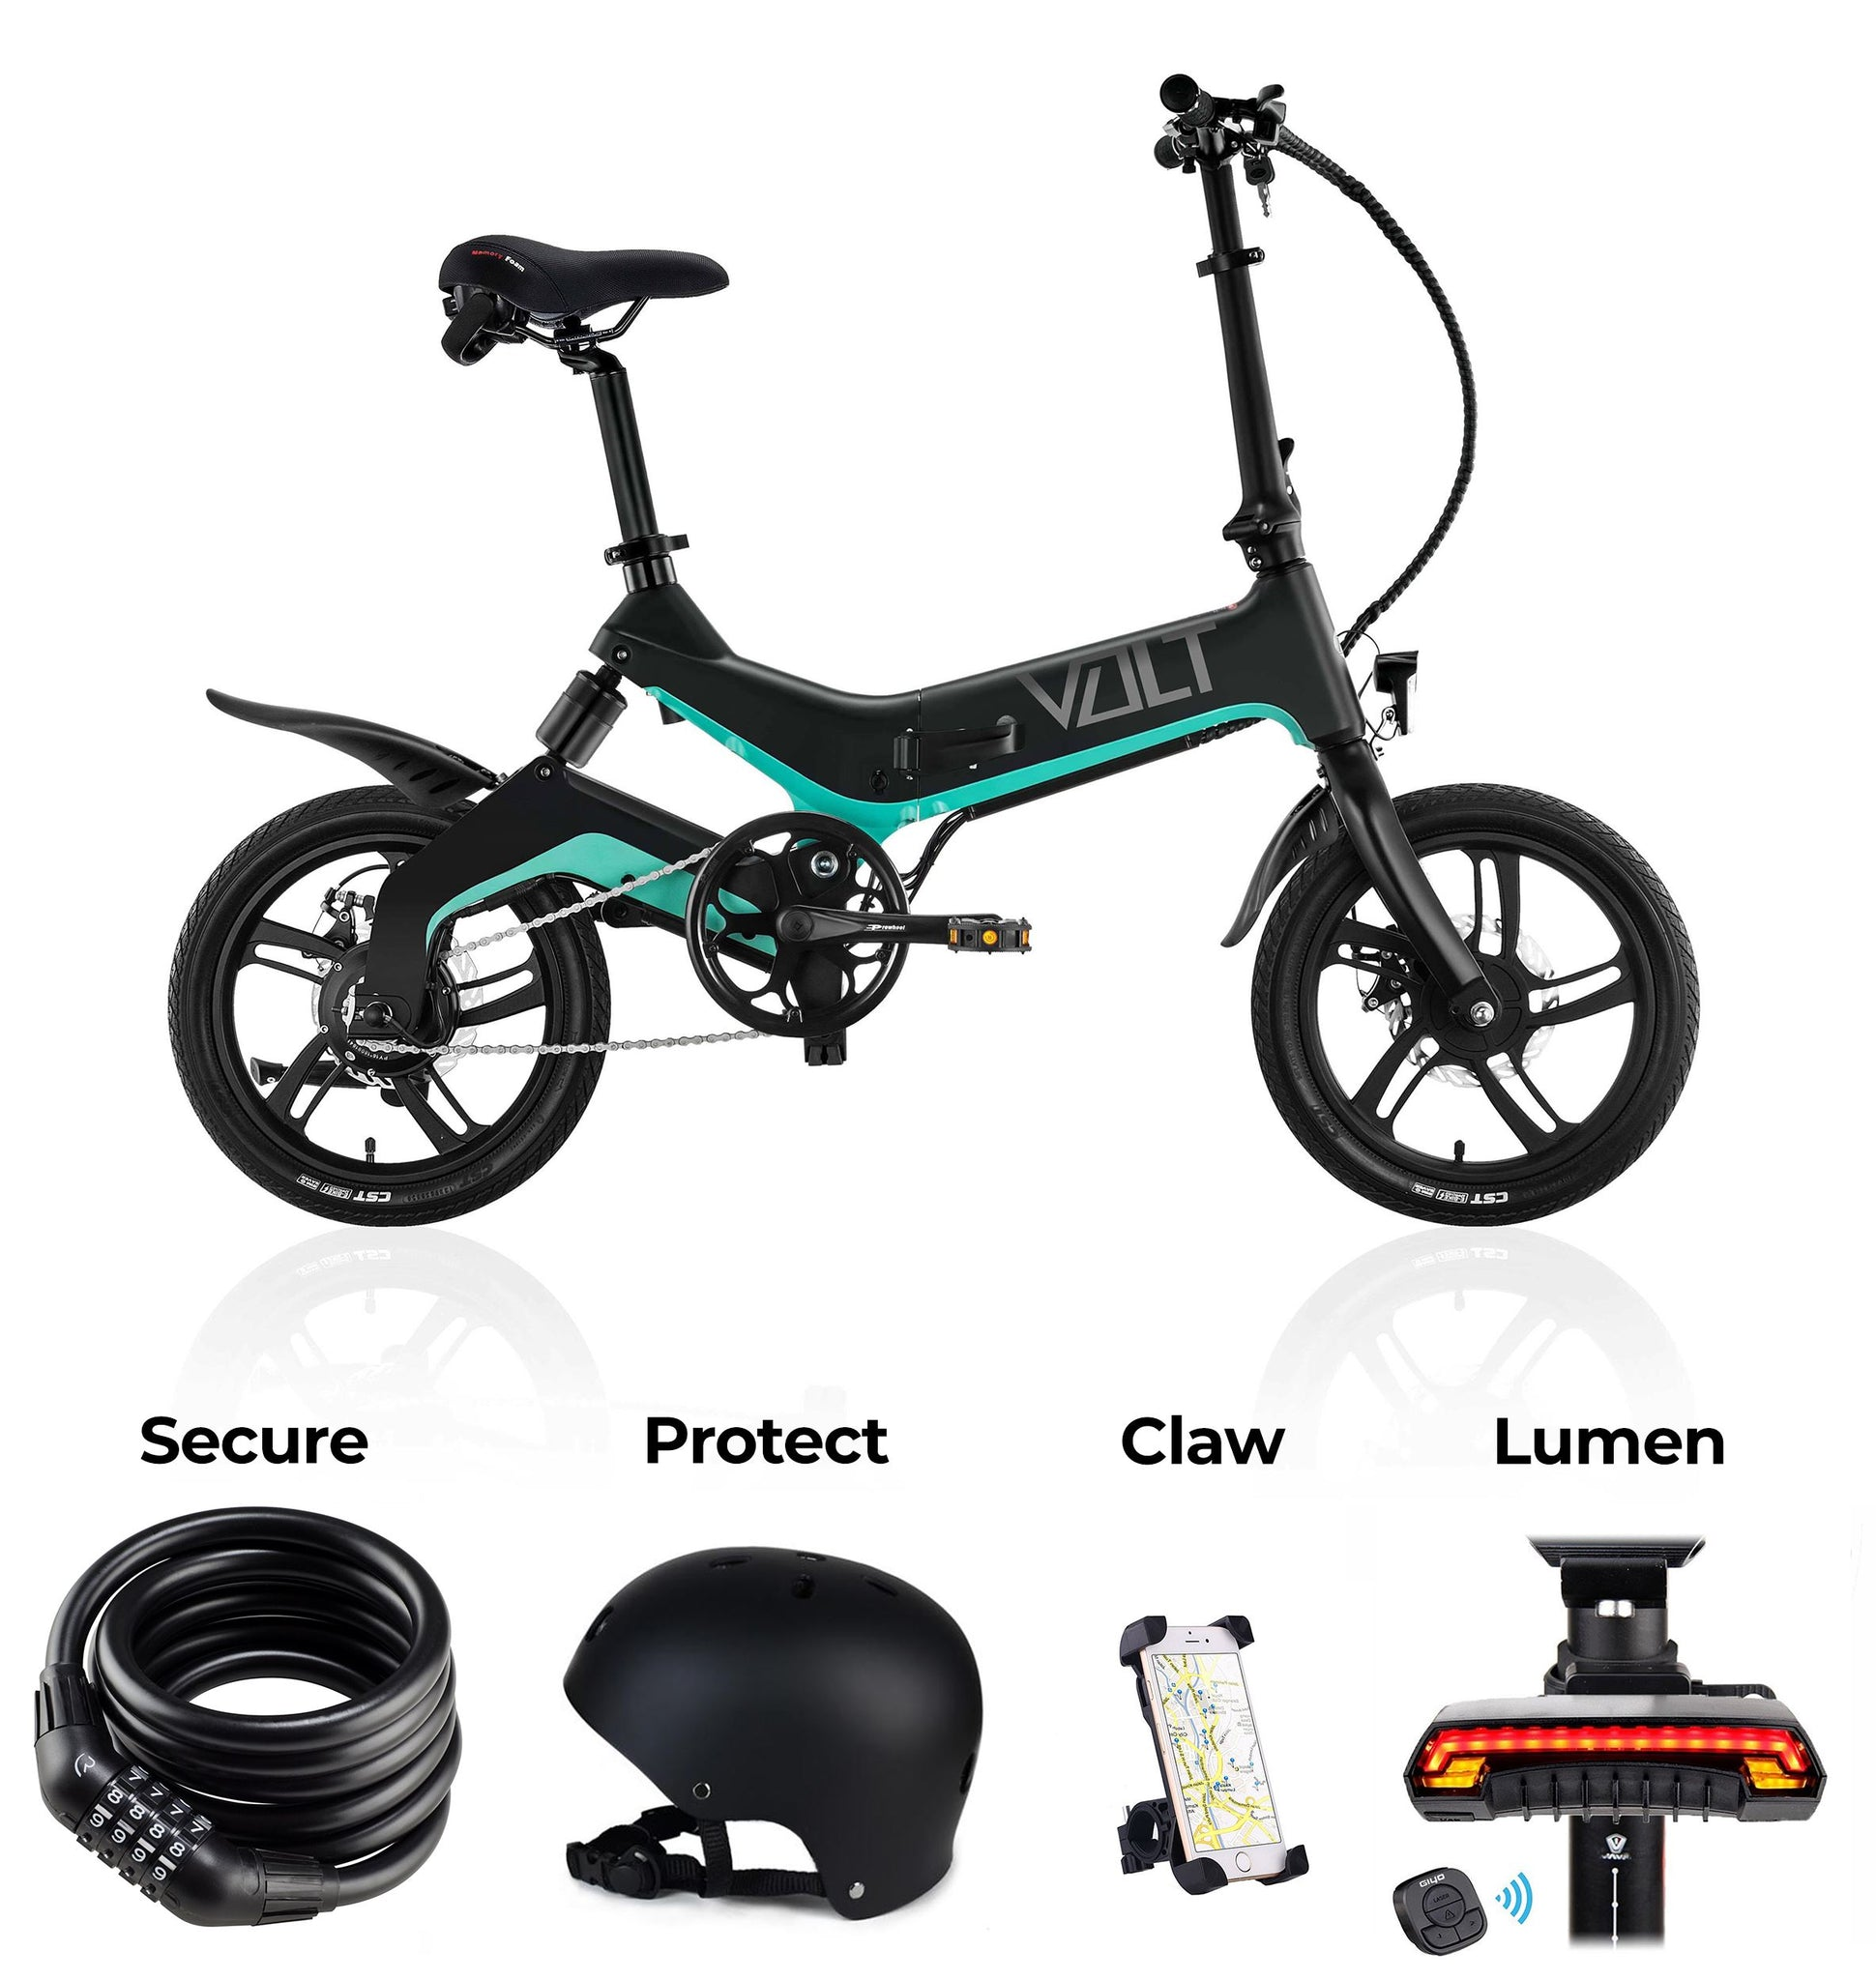 The VOLT E-Bike - Accessories Package